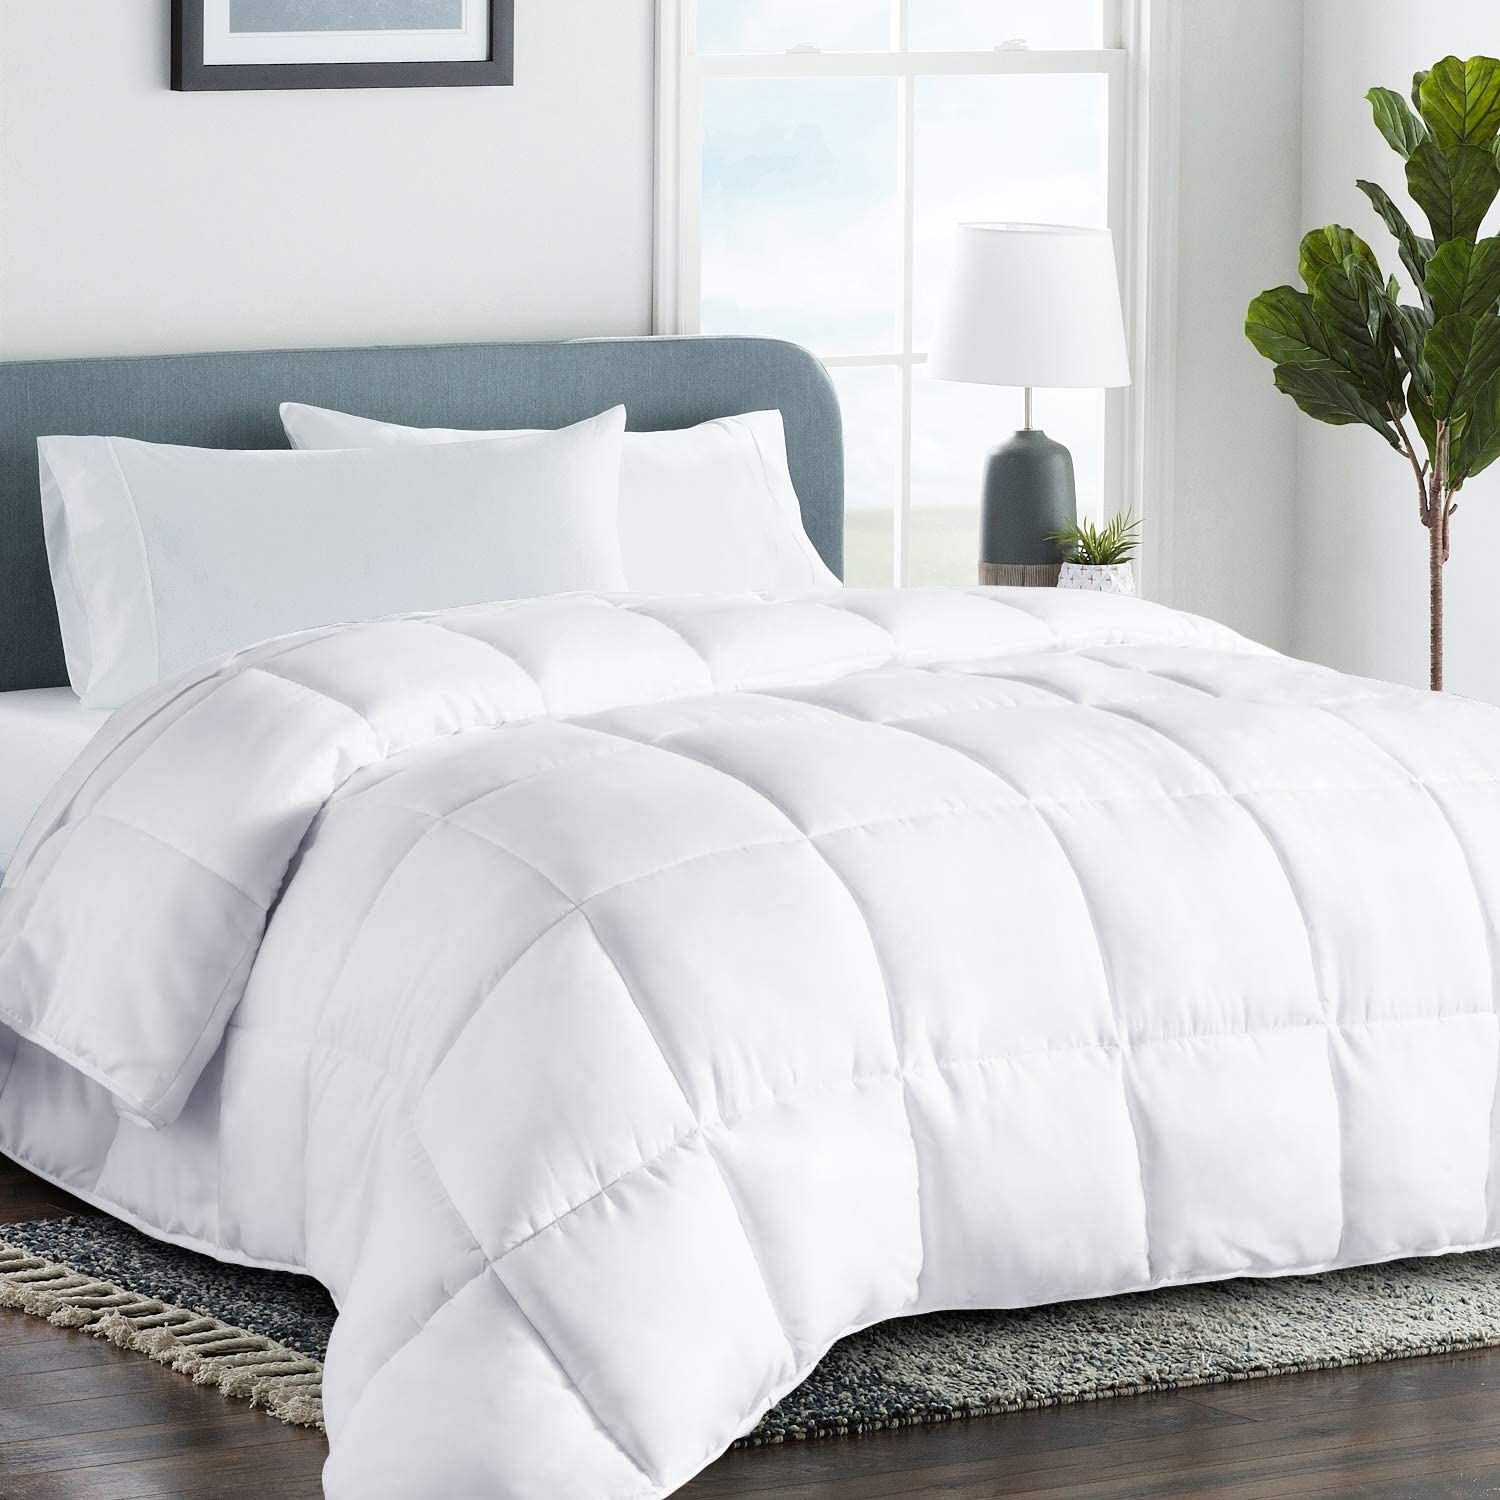 COHOME King 2100 Series Cooling Comforter Down Alternative Q